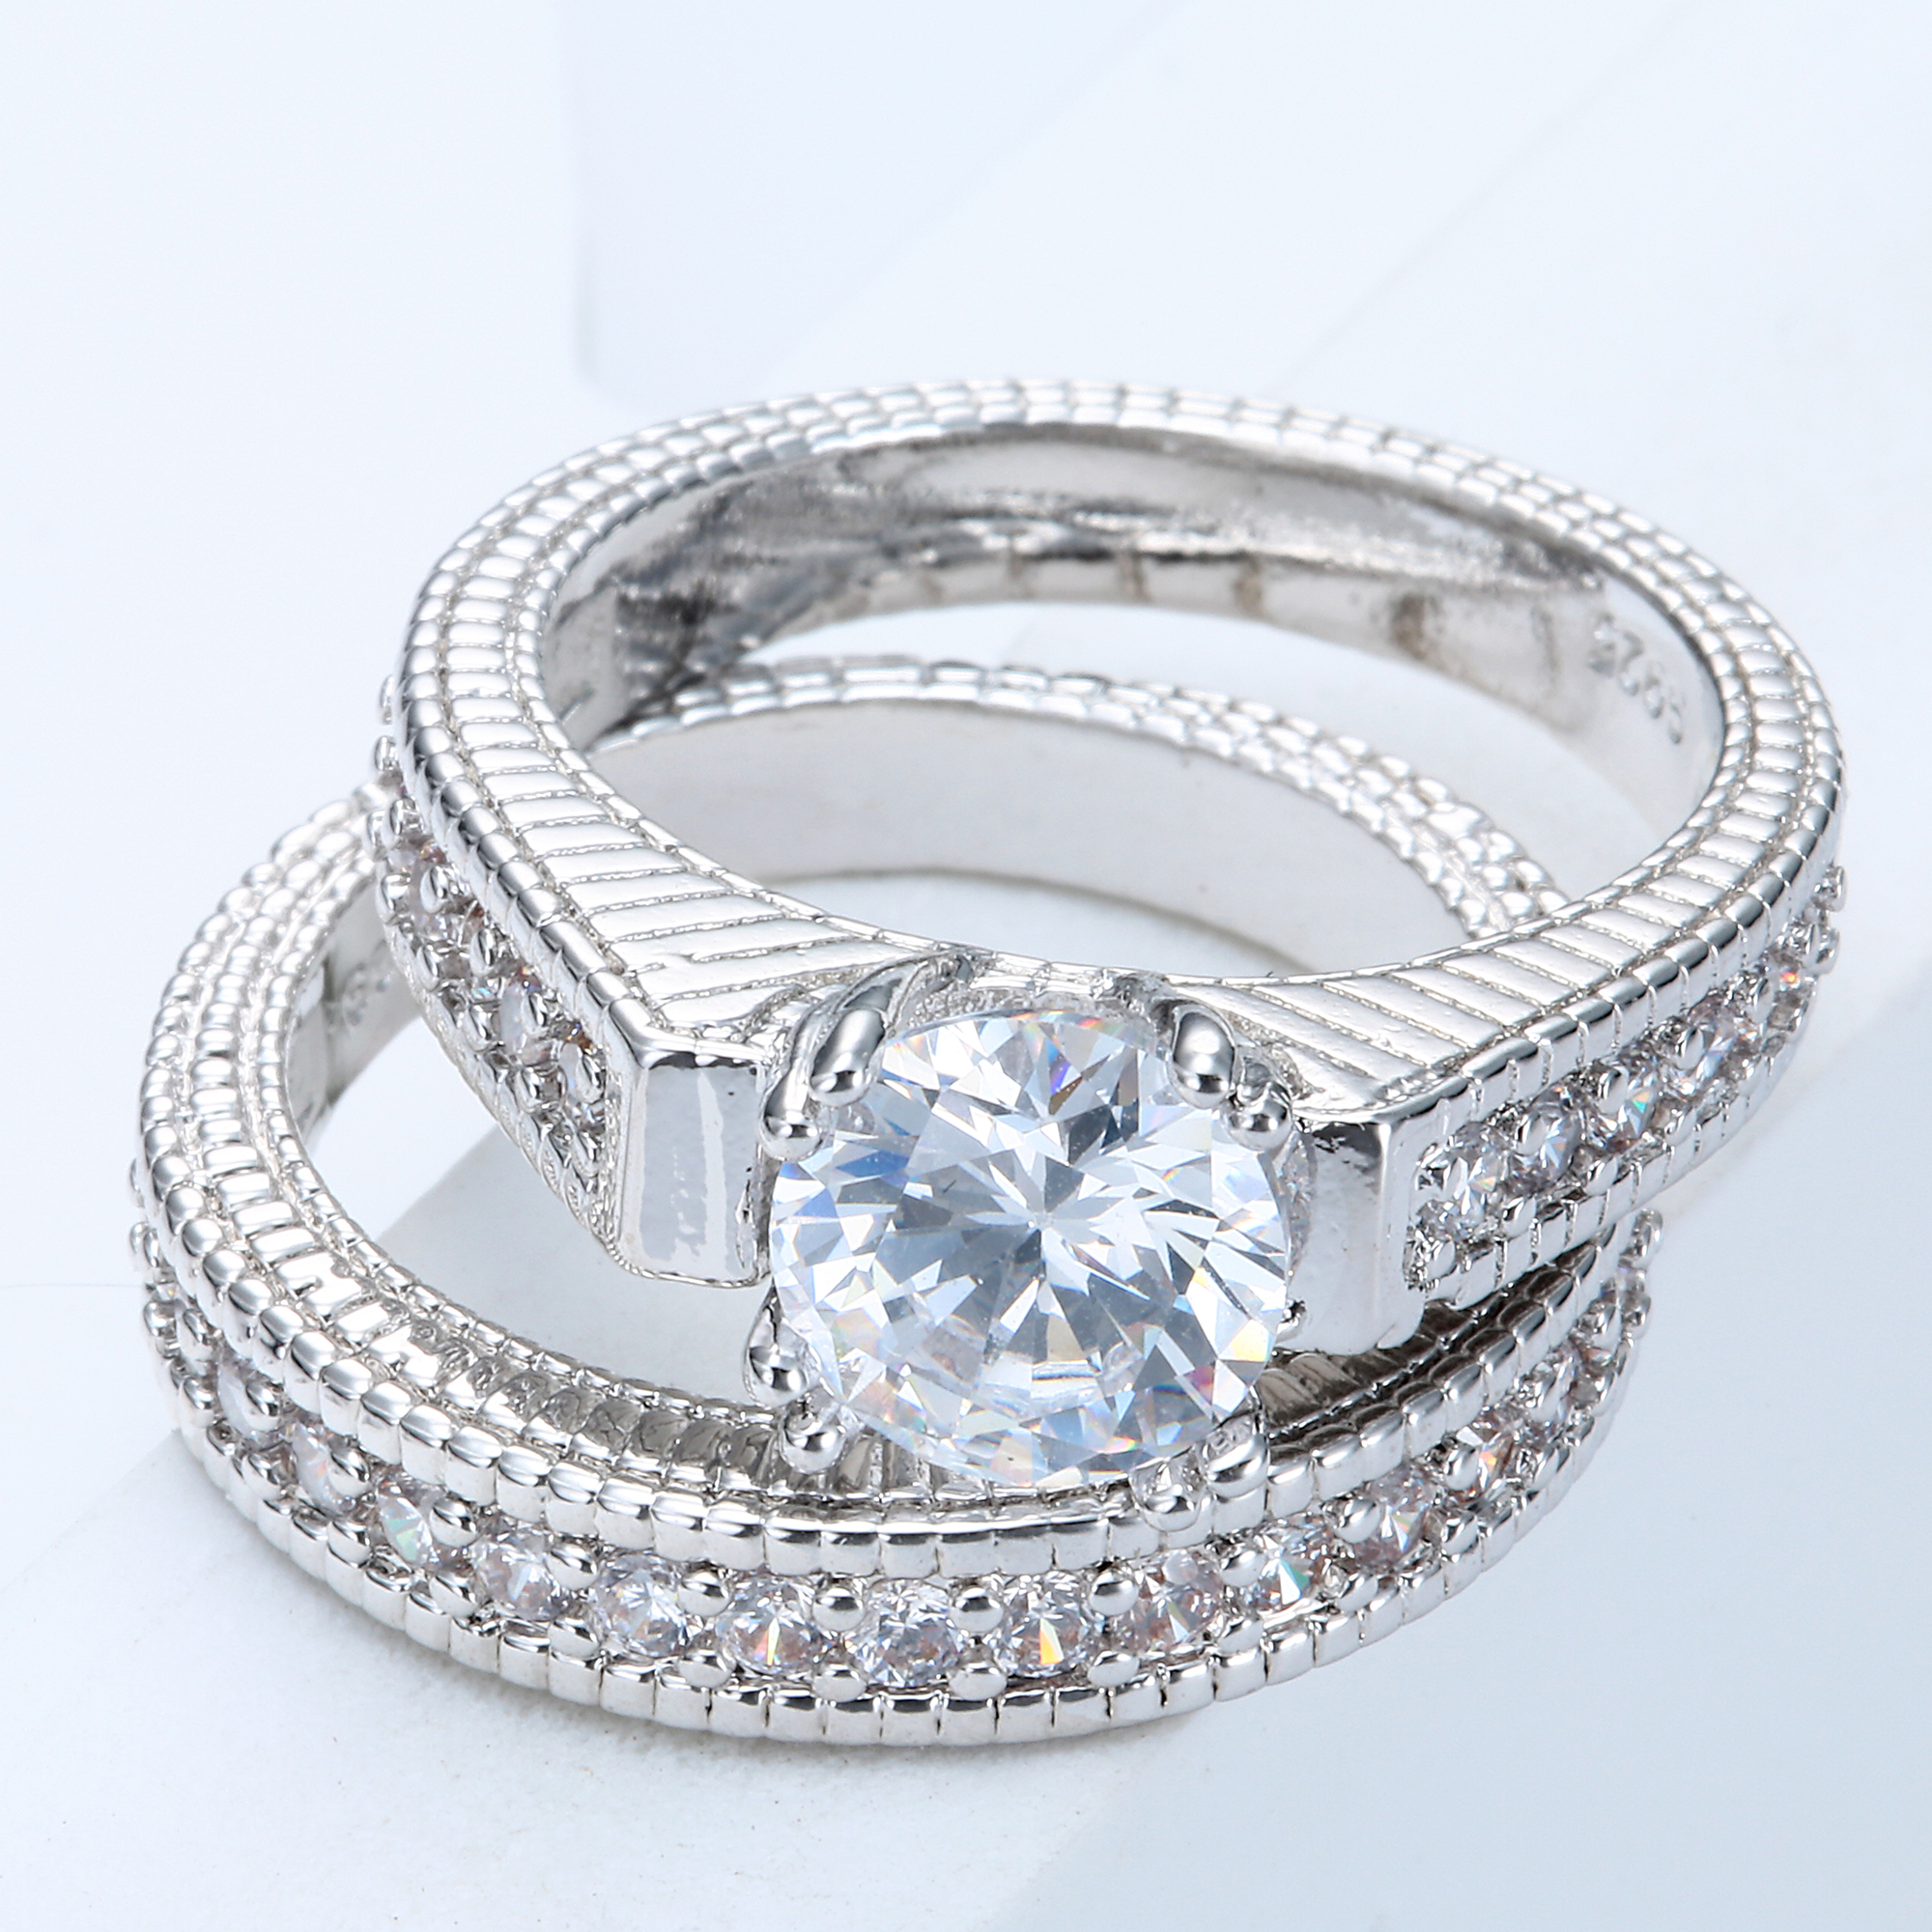 engagementringsre in rings ring engagement micro diamond nyc diamonds tcw platinum from cfm row pave three mdc